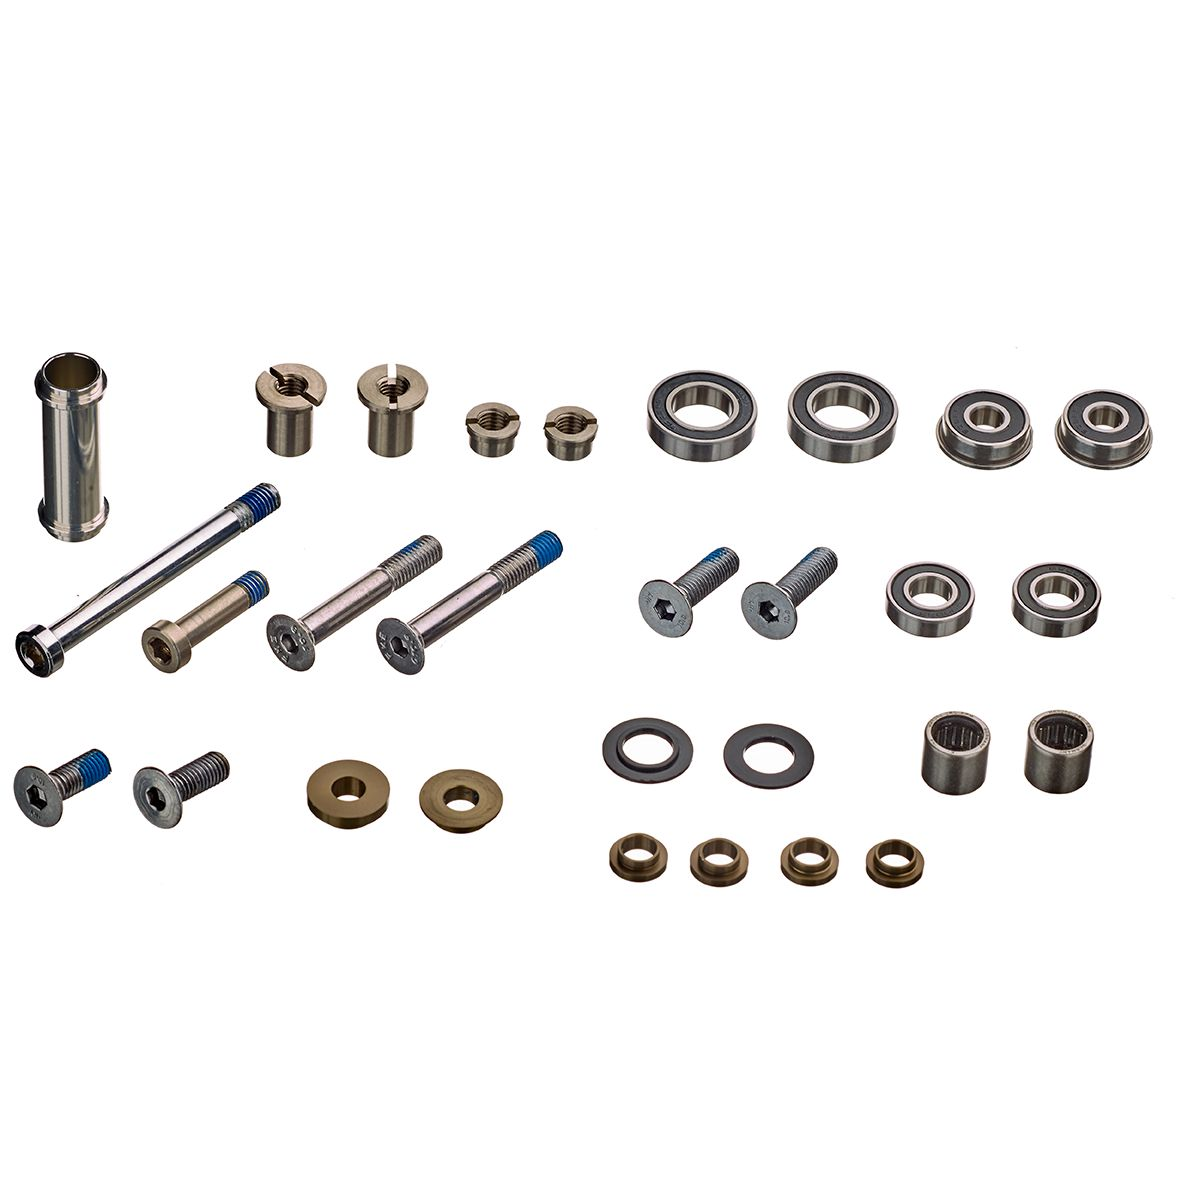 BEEF CAKE DH/FR/SL 2011 & DH 2012 Spare Parts Kit